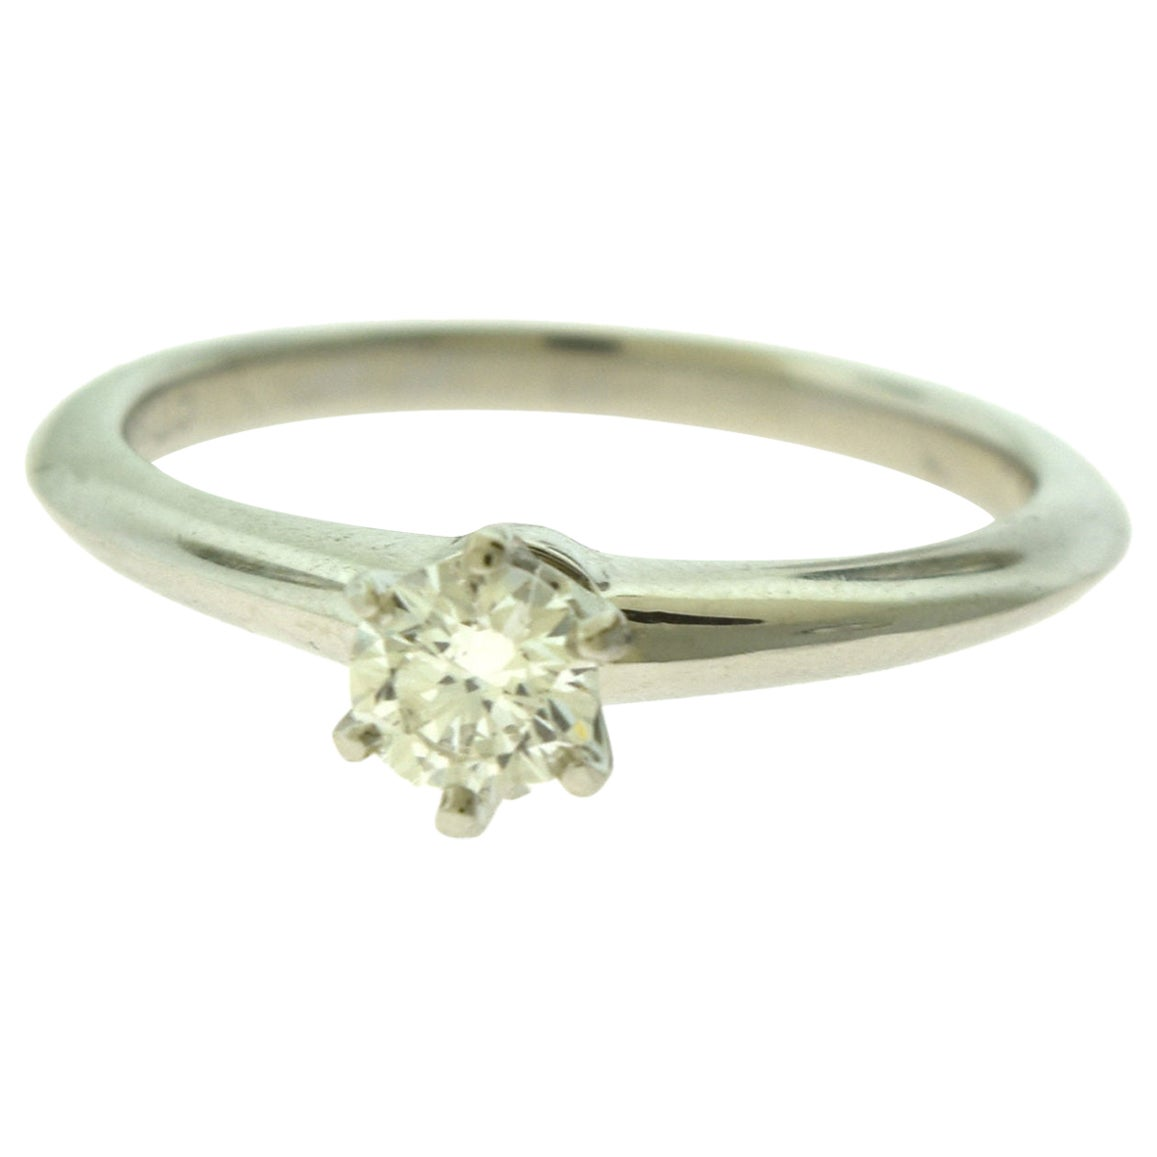 Tiffany & Co. Tiffany Diamond Single Solitaire Platinum Engagement Ring